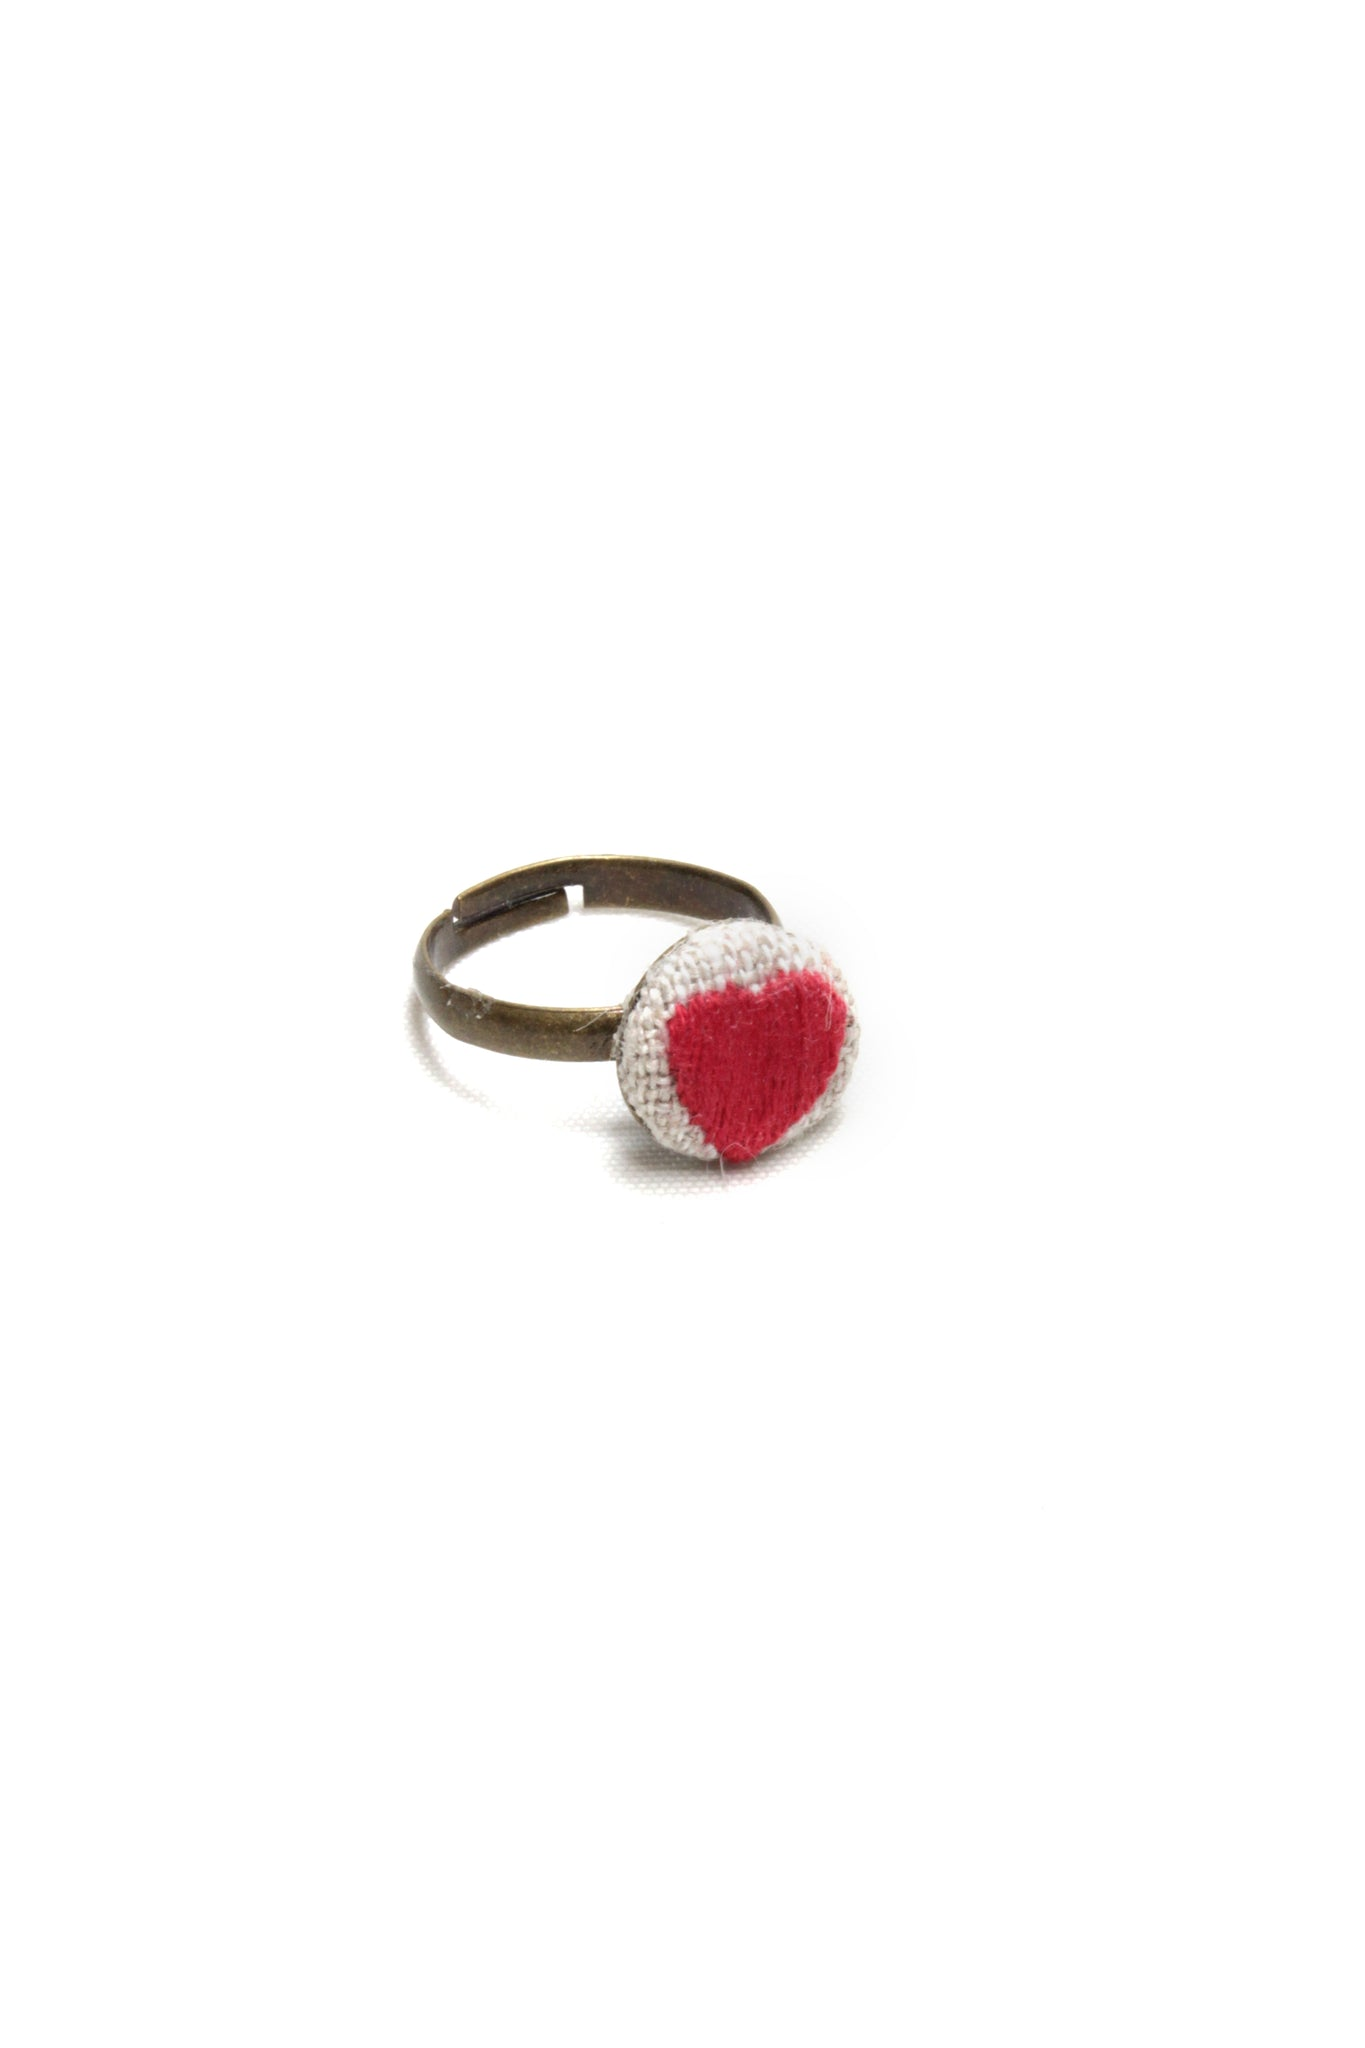 Embroidery Ring - Heart | On Sale